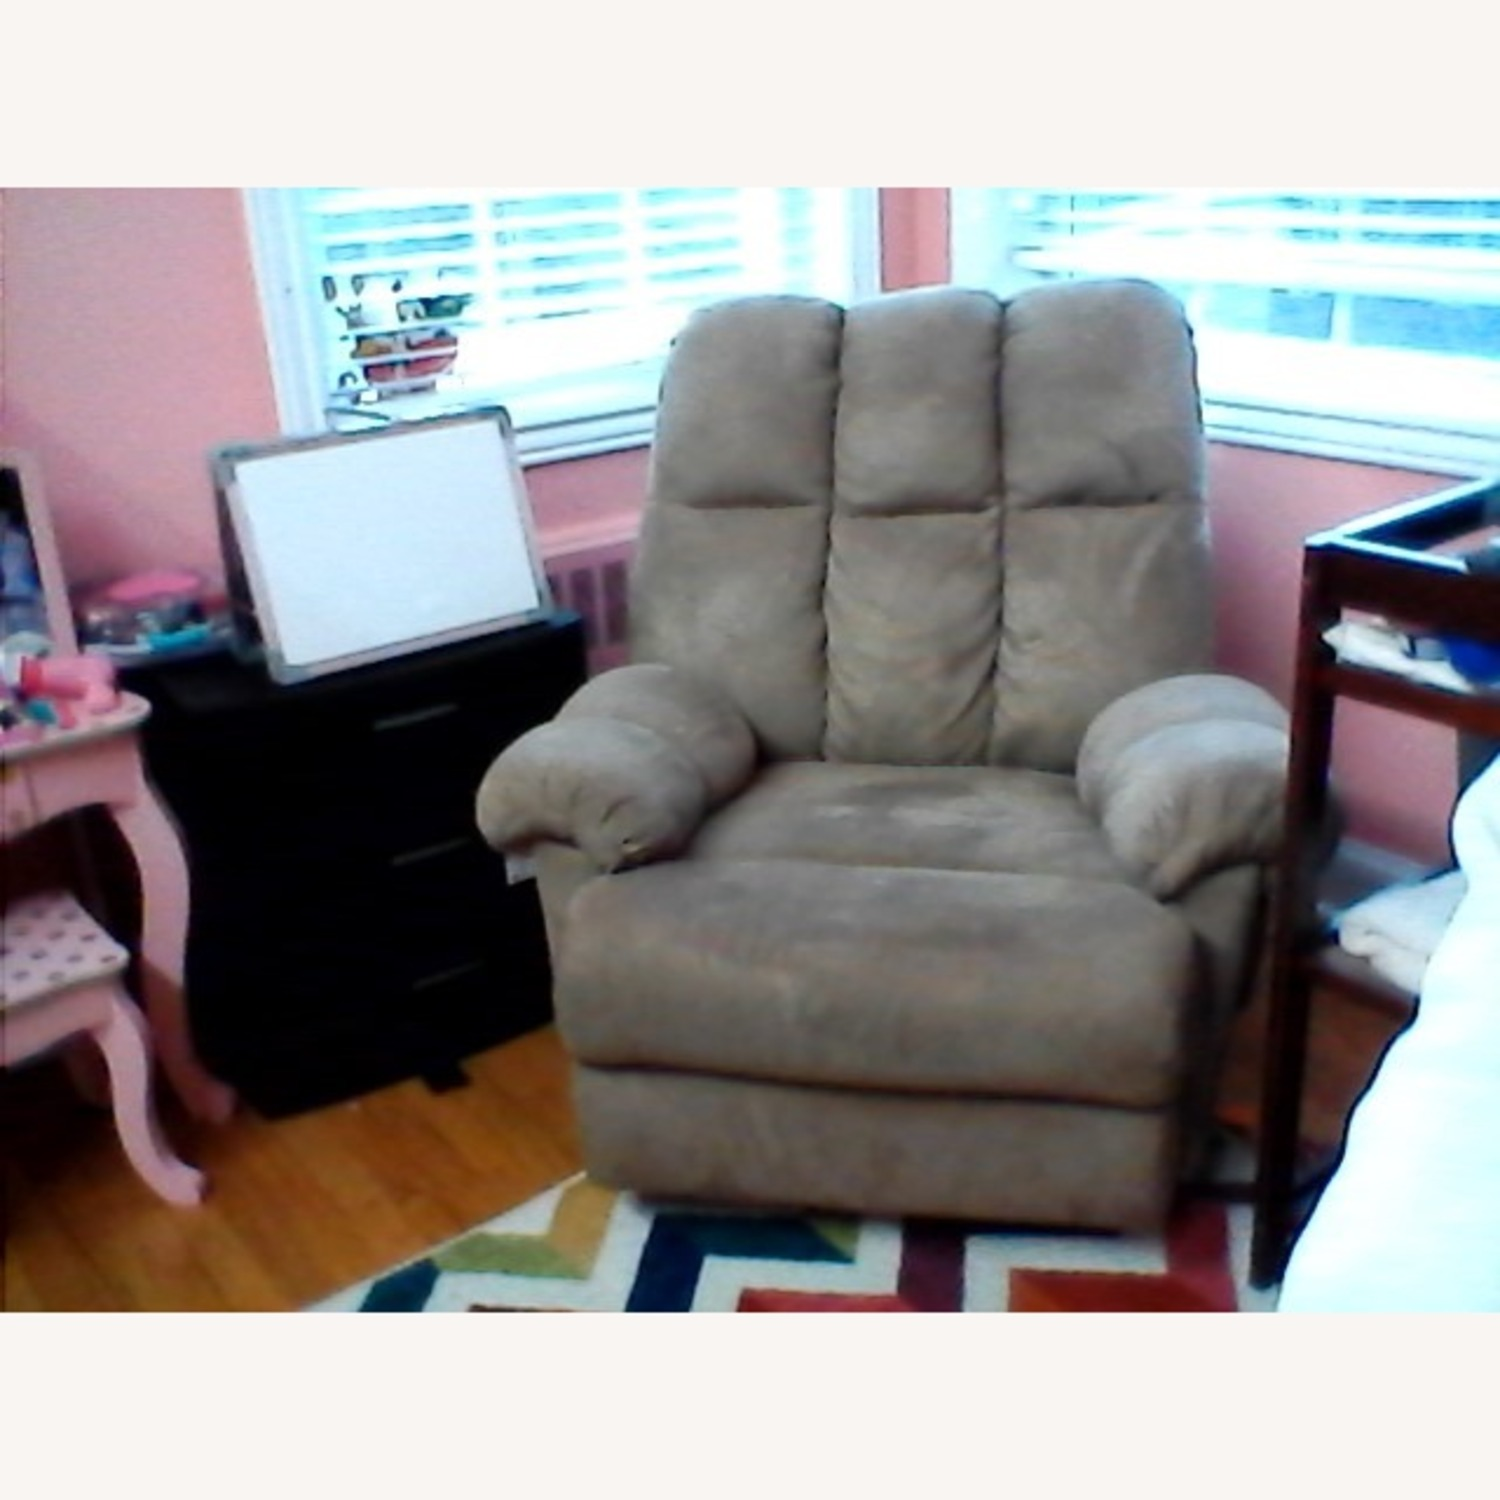 Rocking Chair Nursing and Recliner 2 in 1 - image-6